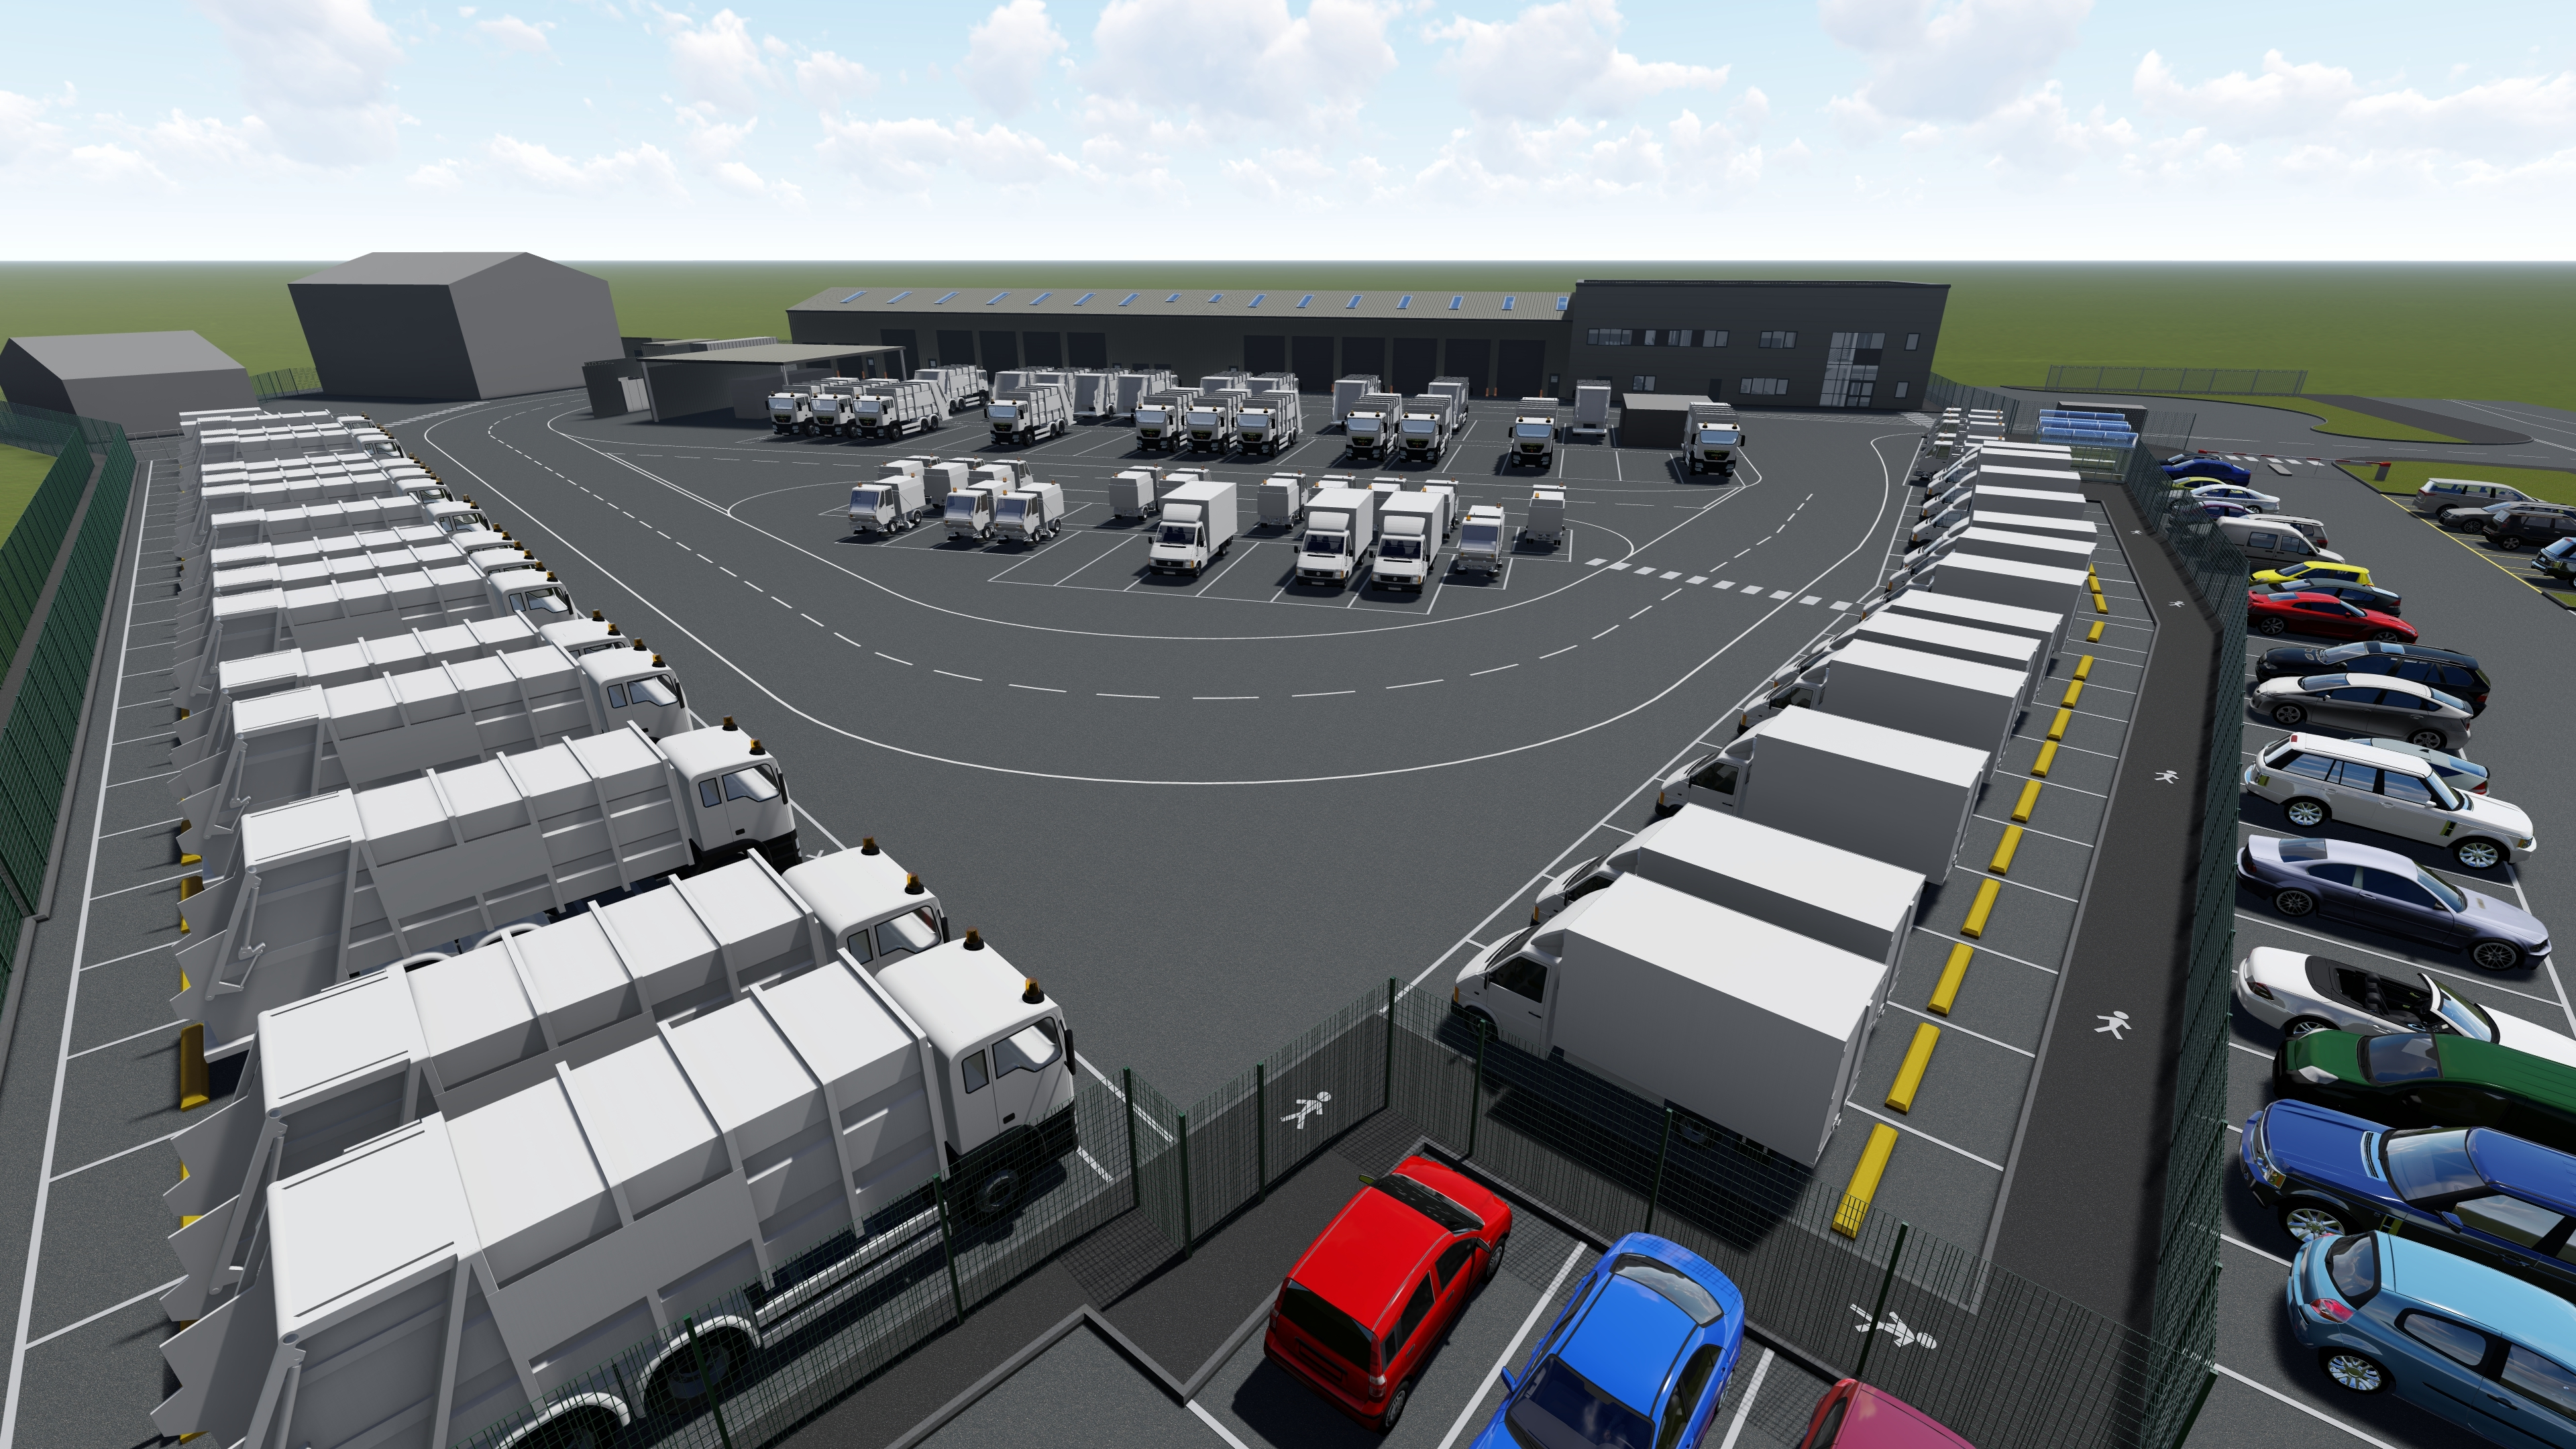 Appointed as lead contractor on Marsh Lane Depot image